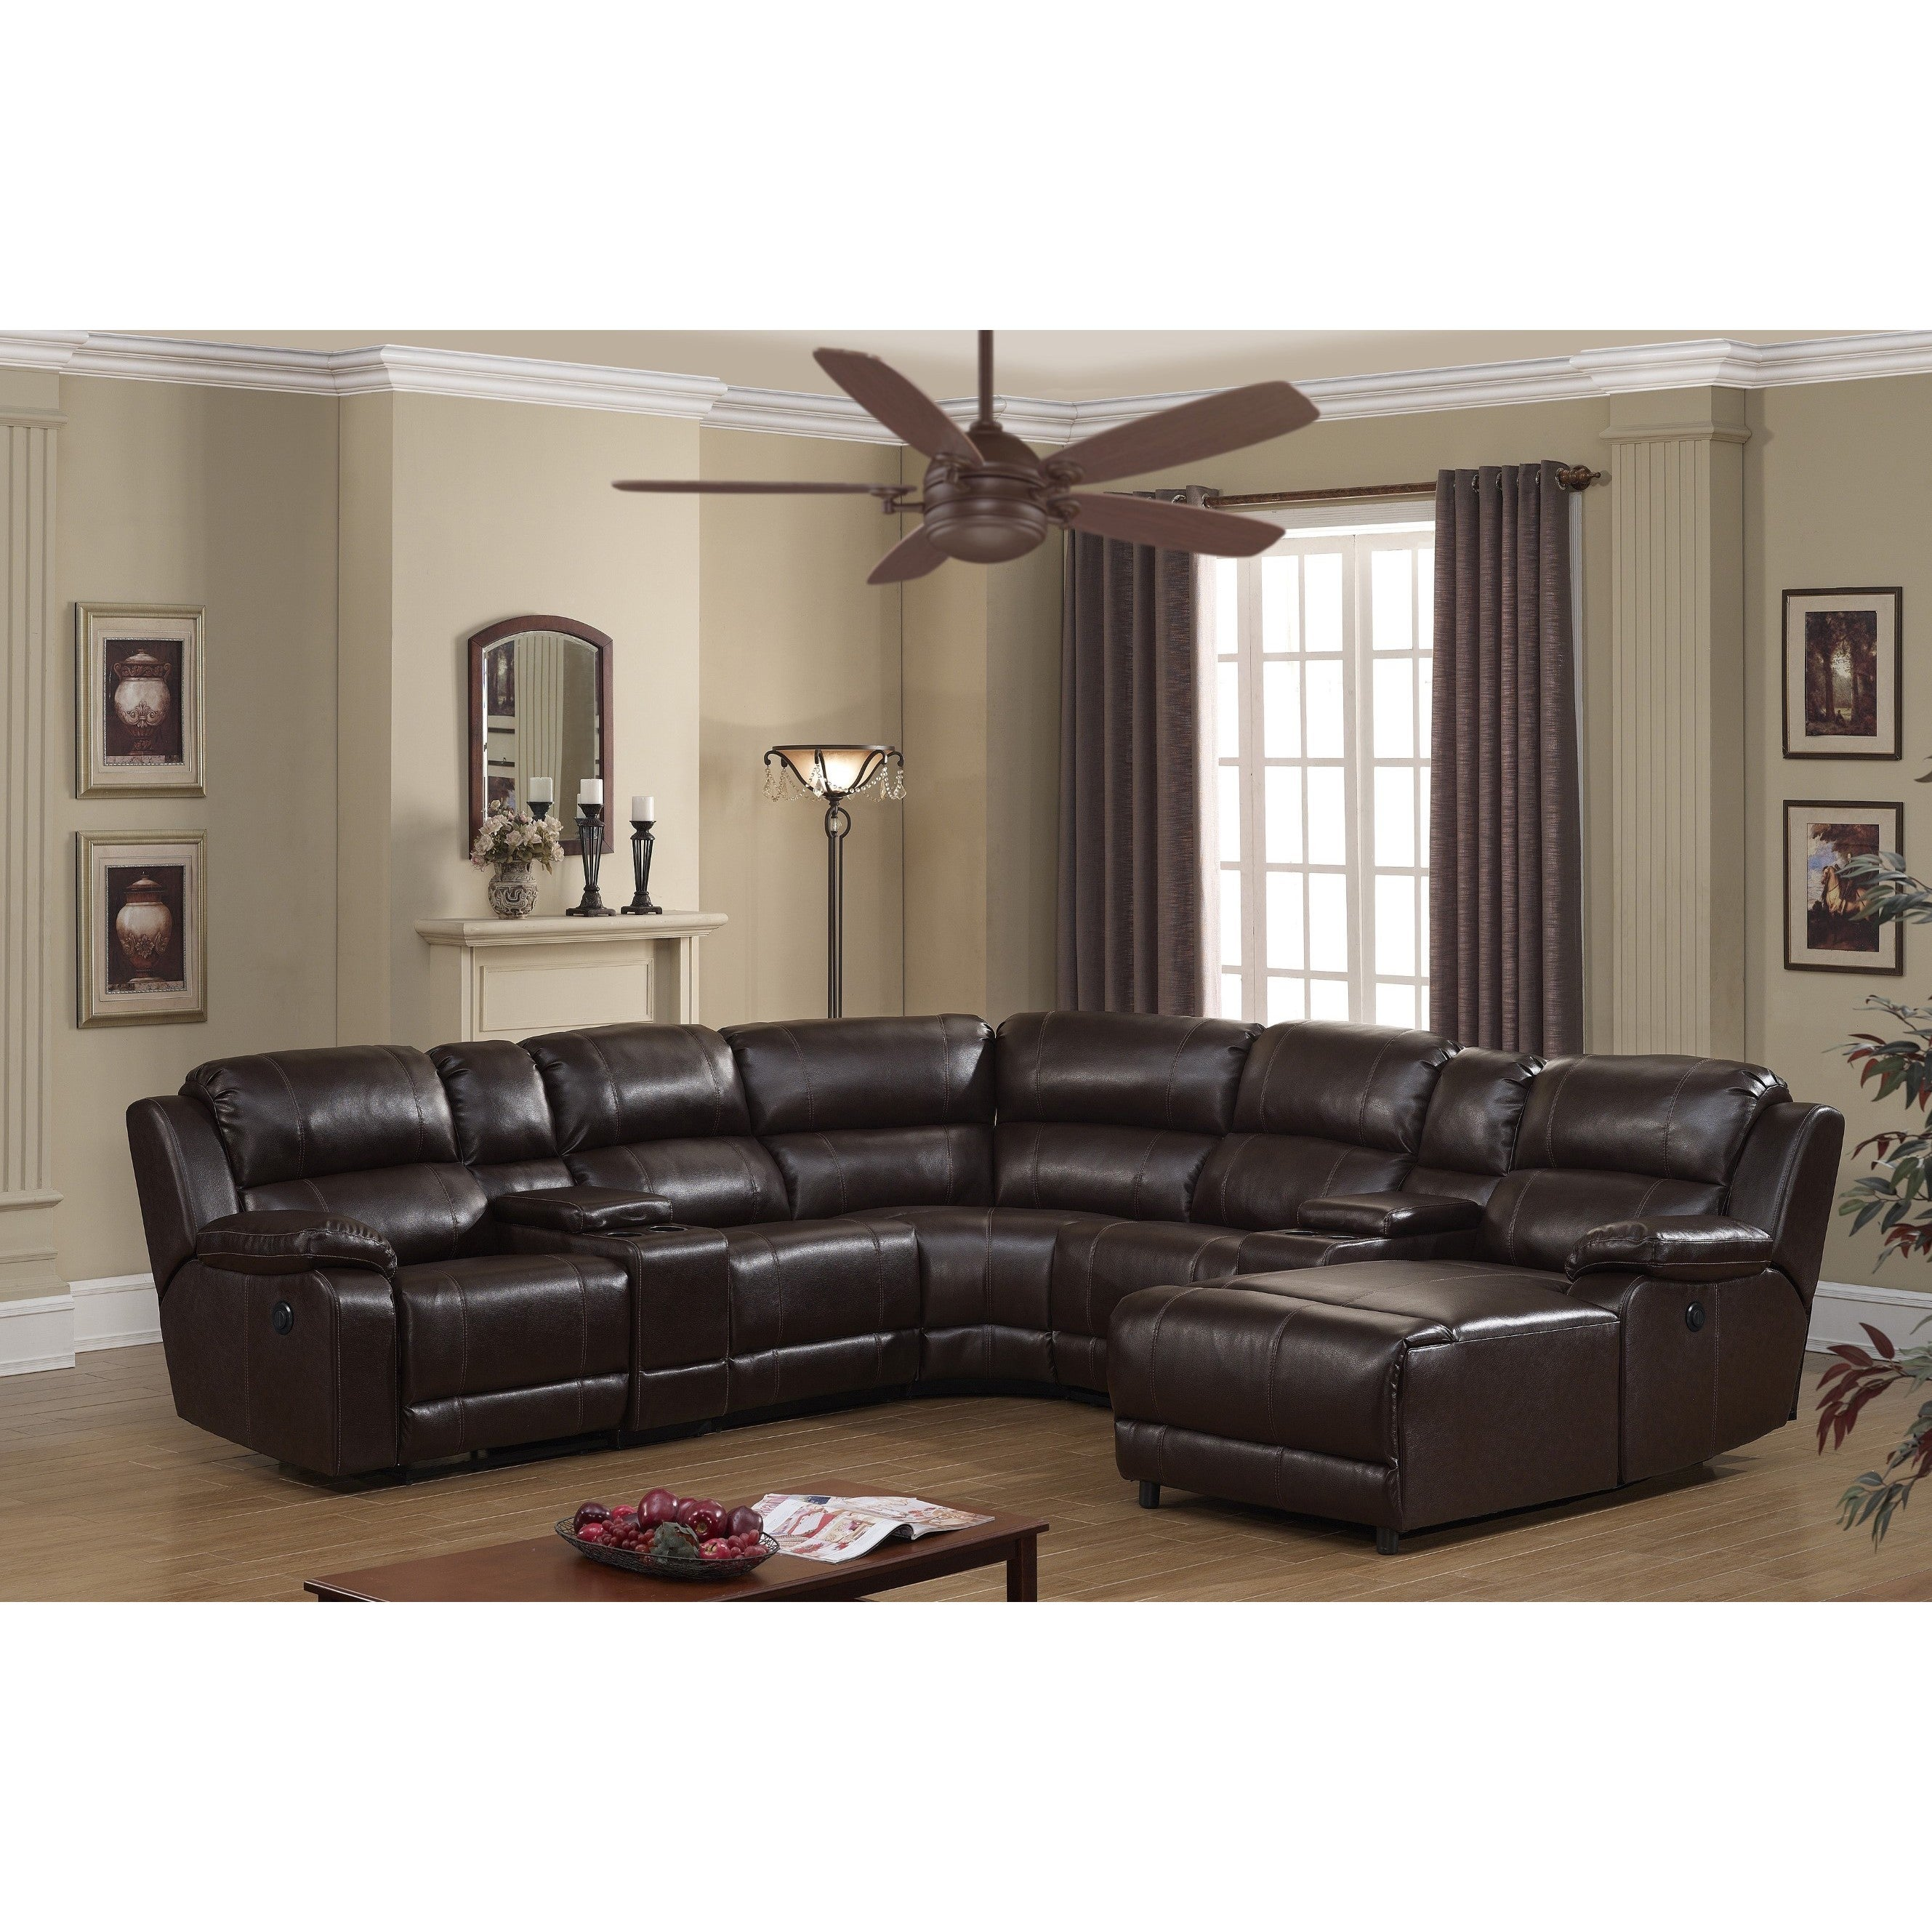 brown reclining grain italian garden sectional regency shipping product power motorized today overstock leather free home top sofa